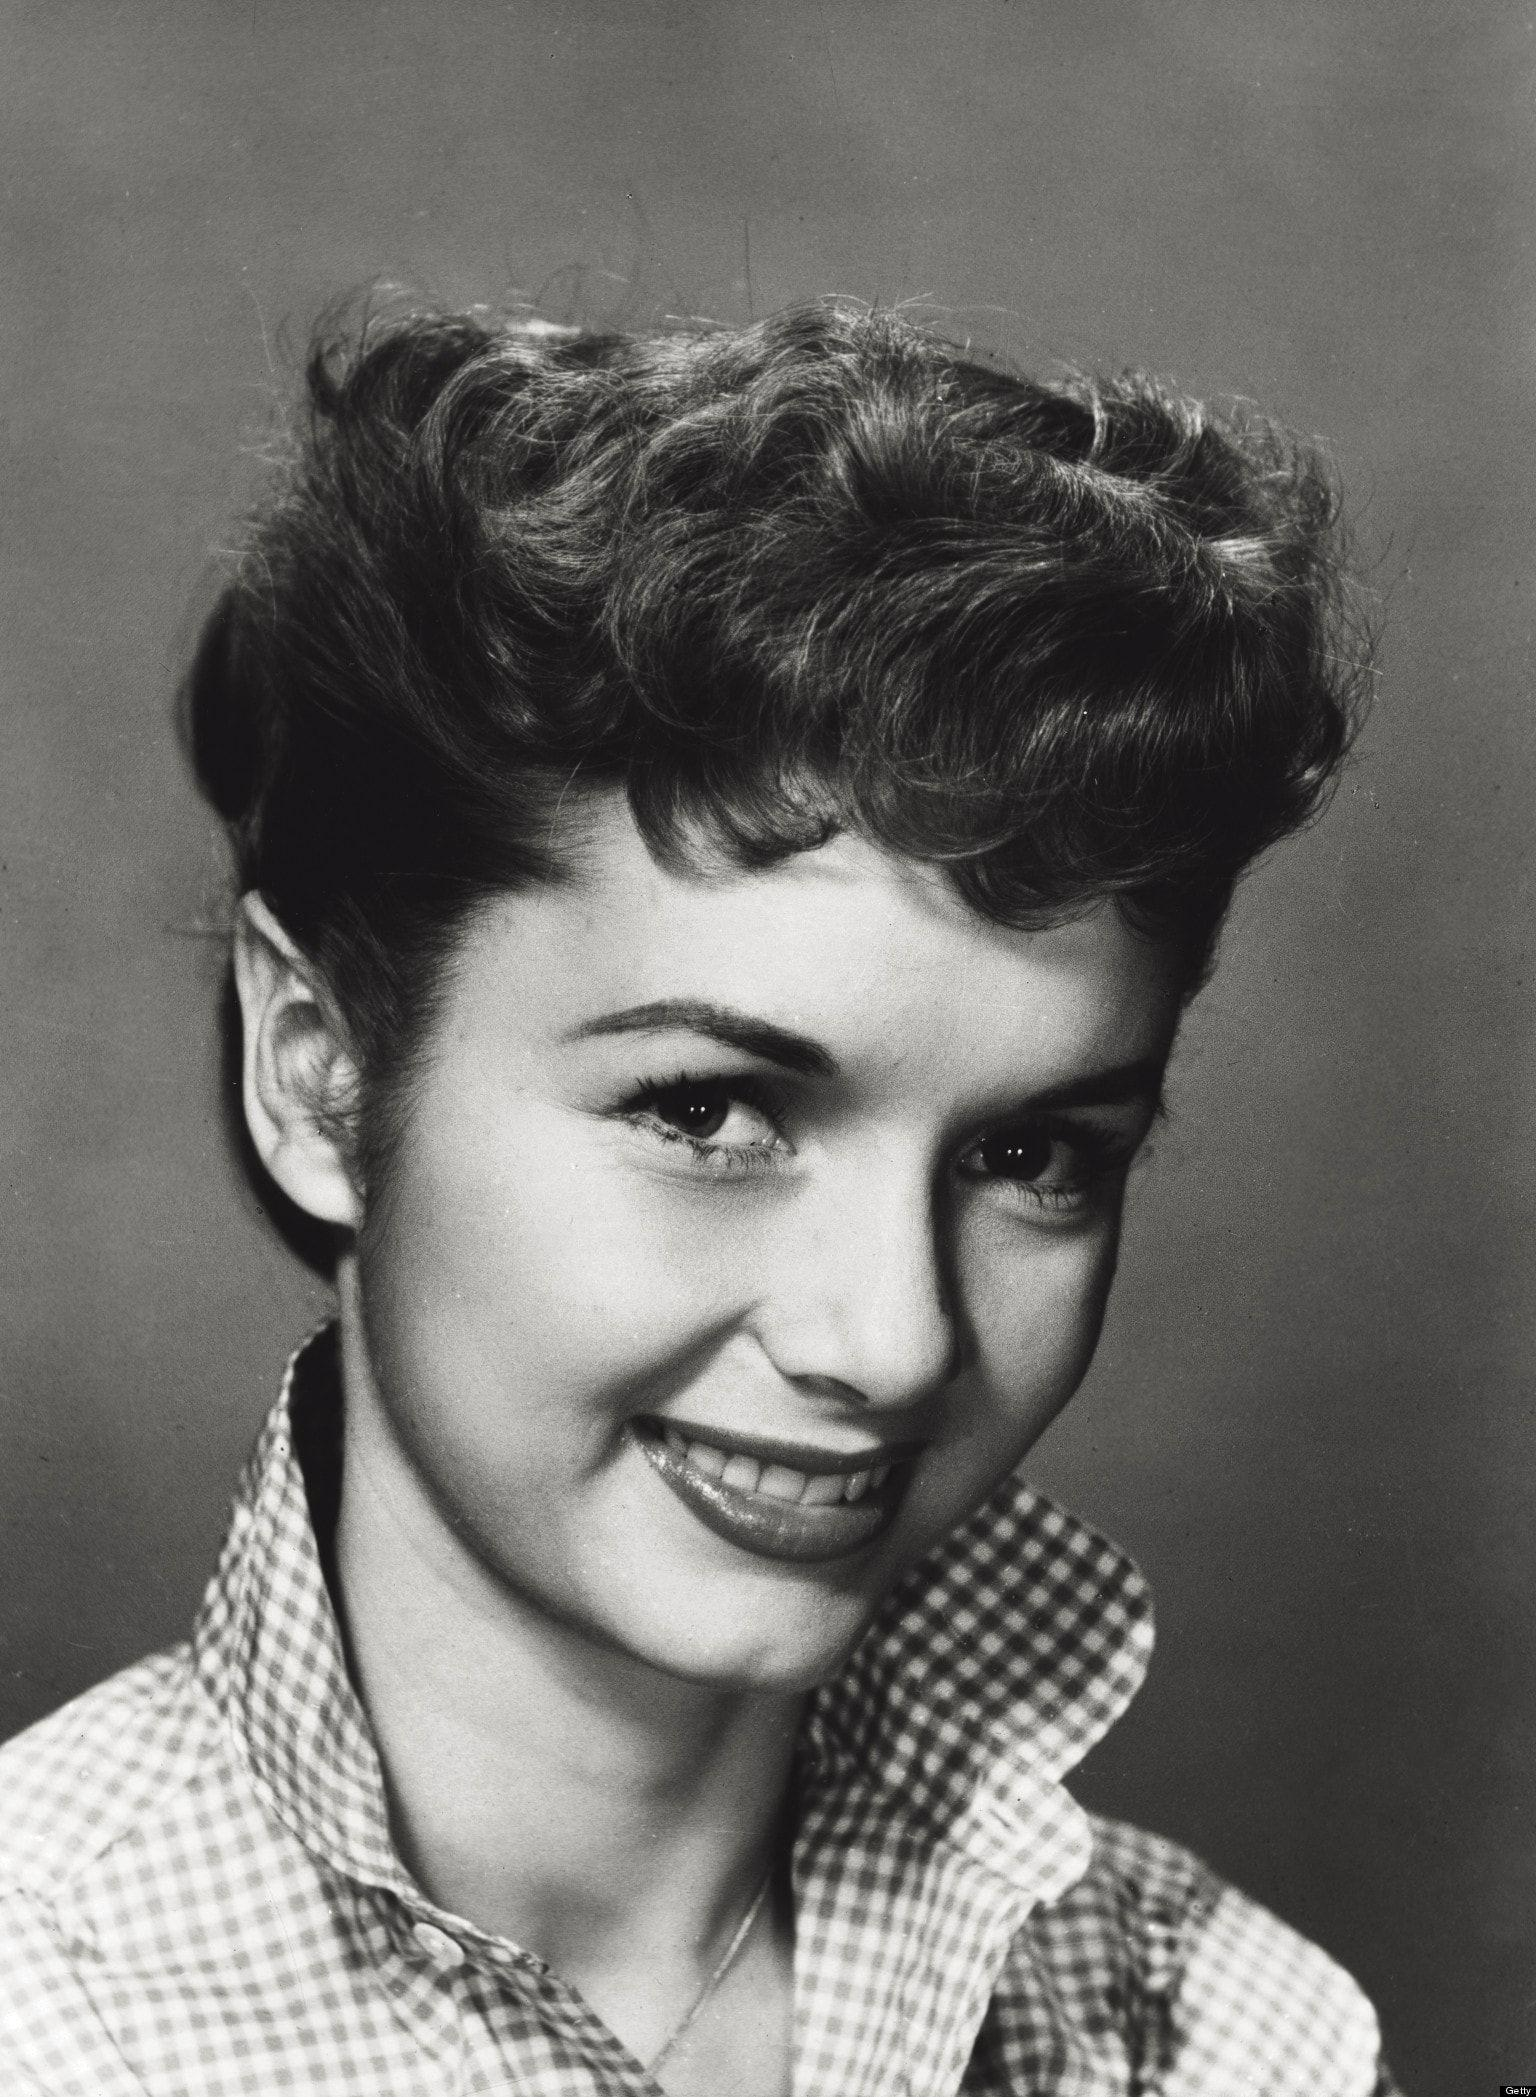 Debbie Reynolds HD Desktop Wallpapers | 7wallpapers.net